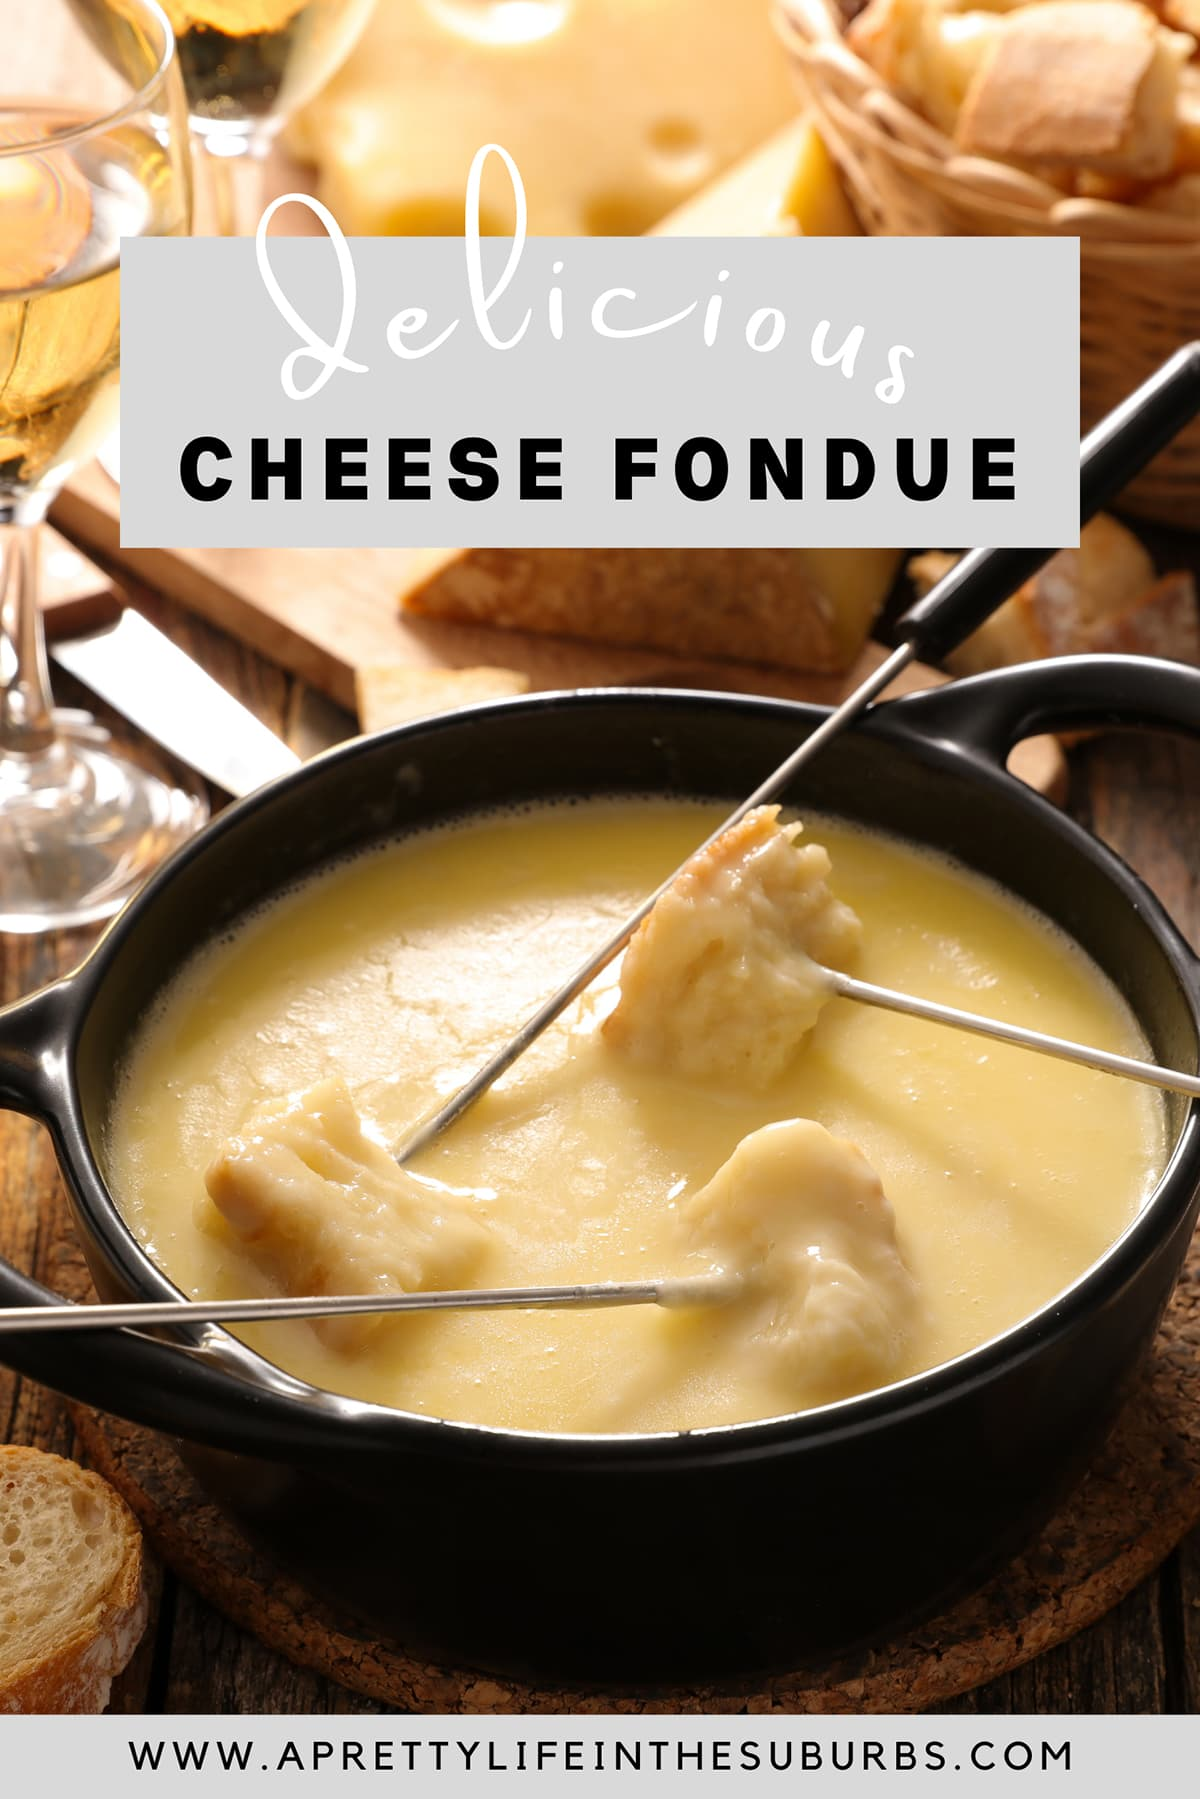 three forks with bread dipped in cheese fondue